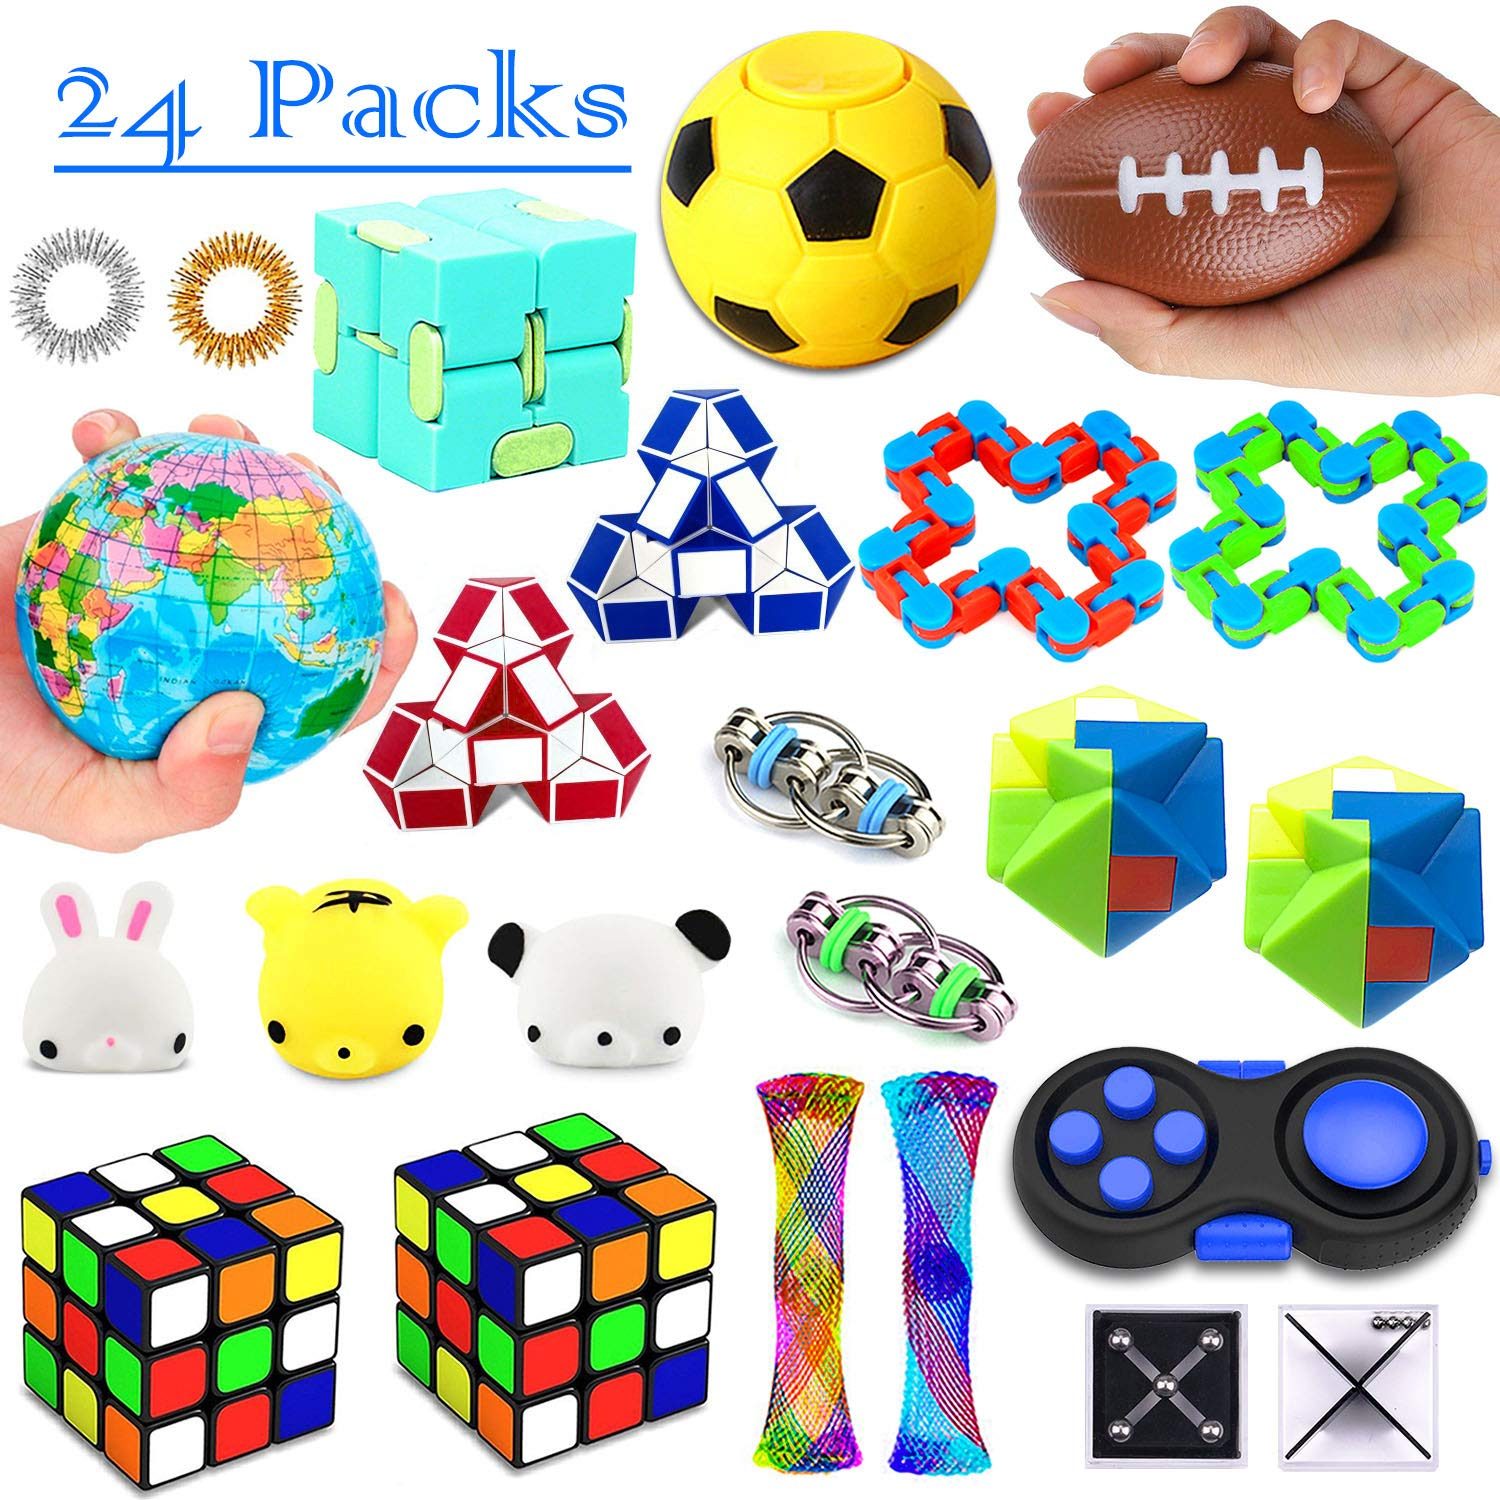 26 Pack Sensory Toys Set, Fidget Toys Pack Stress Relief Hand Toys for Adults Kids ADHD ADD Anxiety Autism - Perfect for Birthday Pinata Fillers, Classroom Treasure Box Prizes and Carnival Games by nobasco